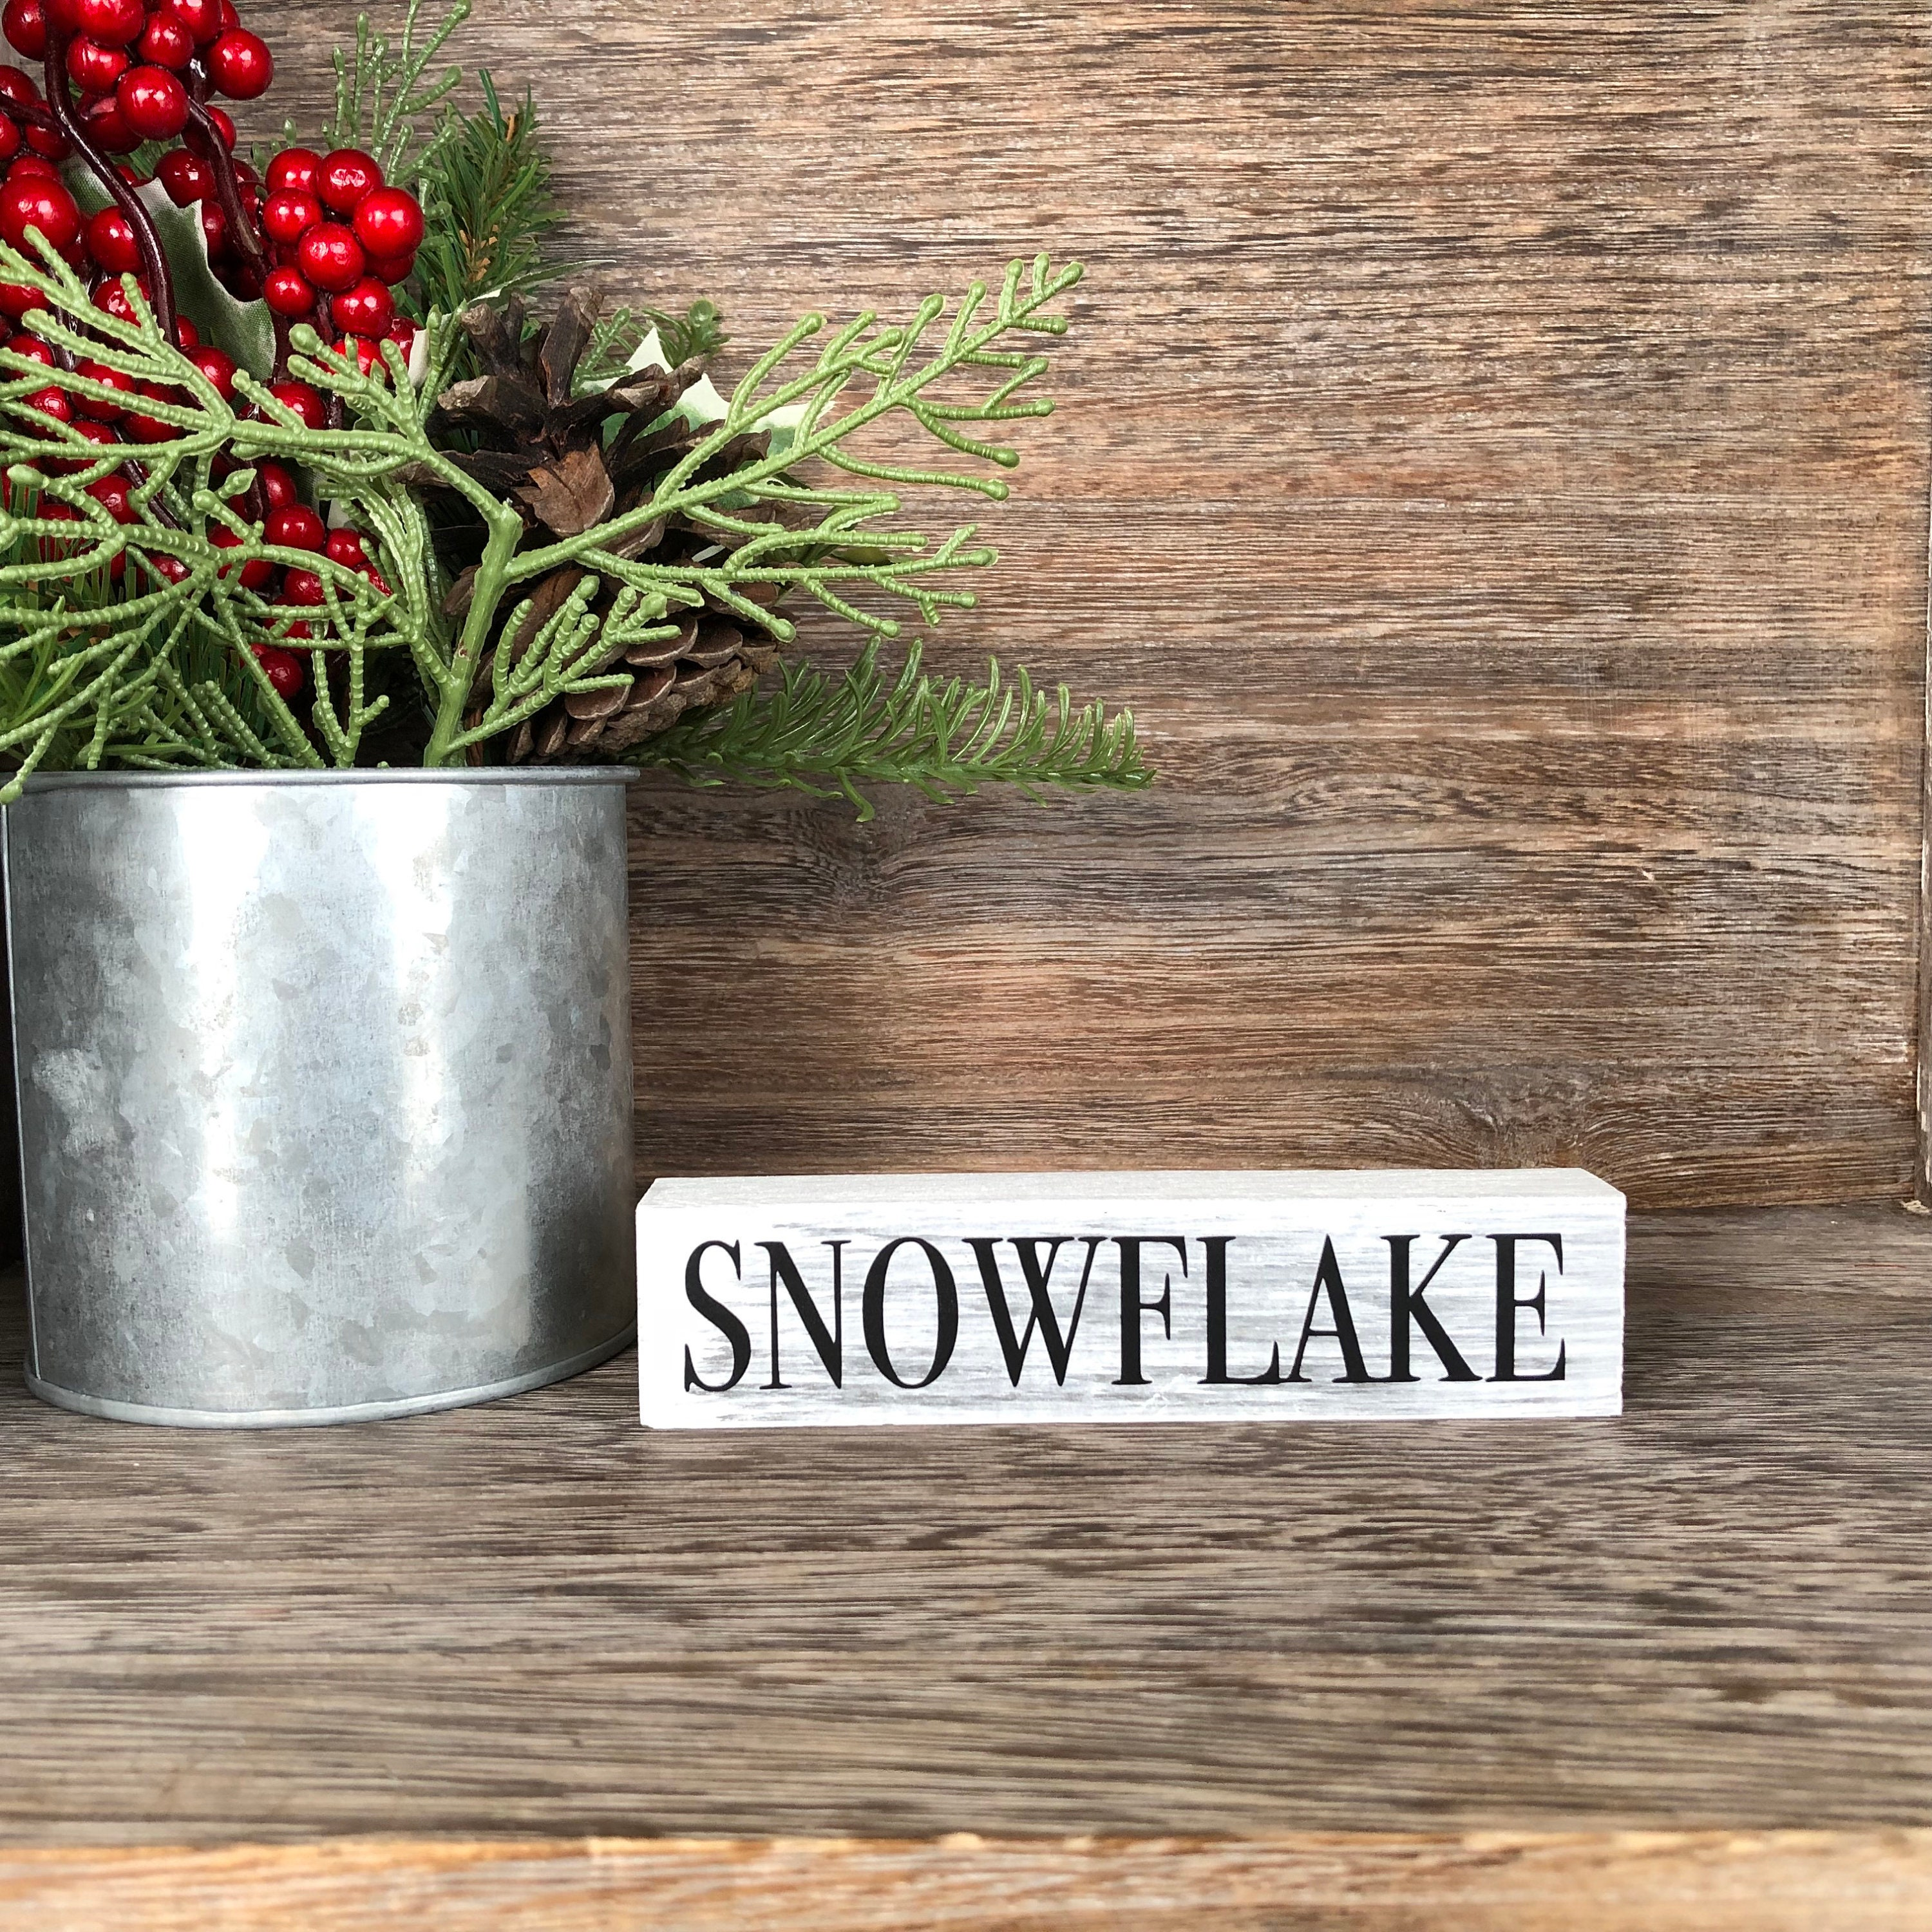 Snowflake Small Rustic Black And White Sign Farmhouse